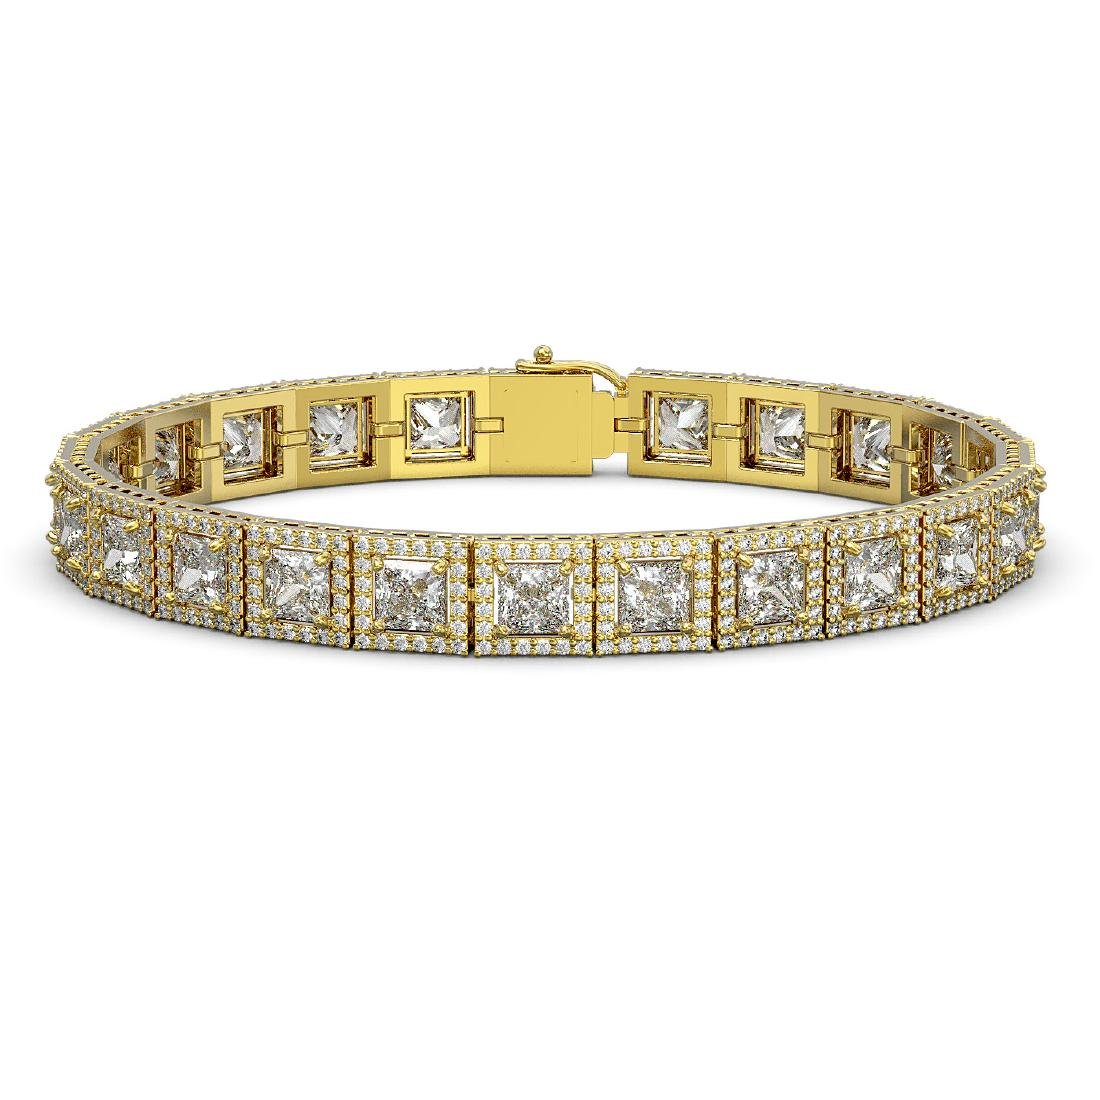 15.87 CTW Princess Diamond Designer Bracelet 18K Yellow